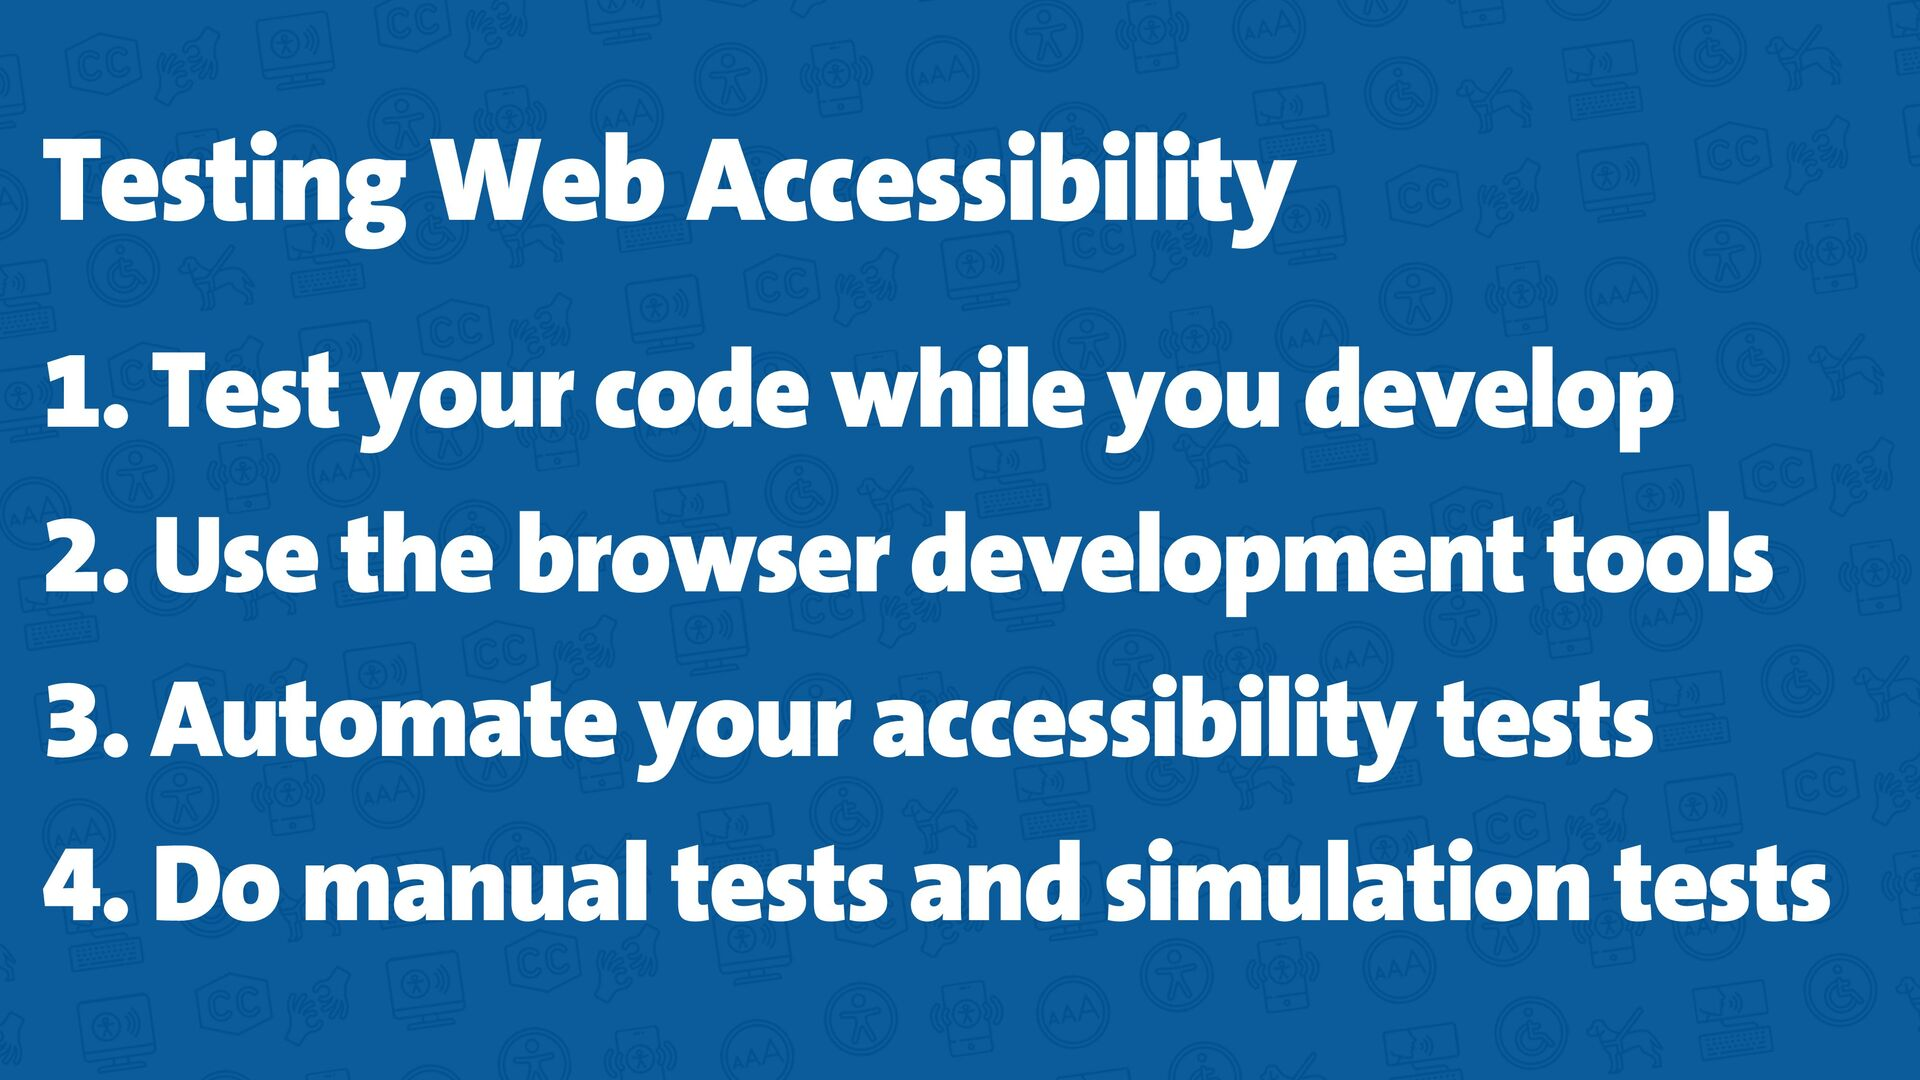 https://www.edx.org/course/web-accessibility-in...